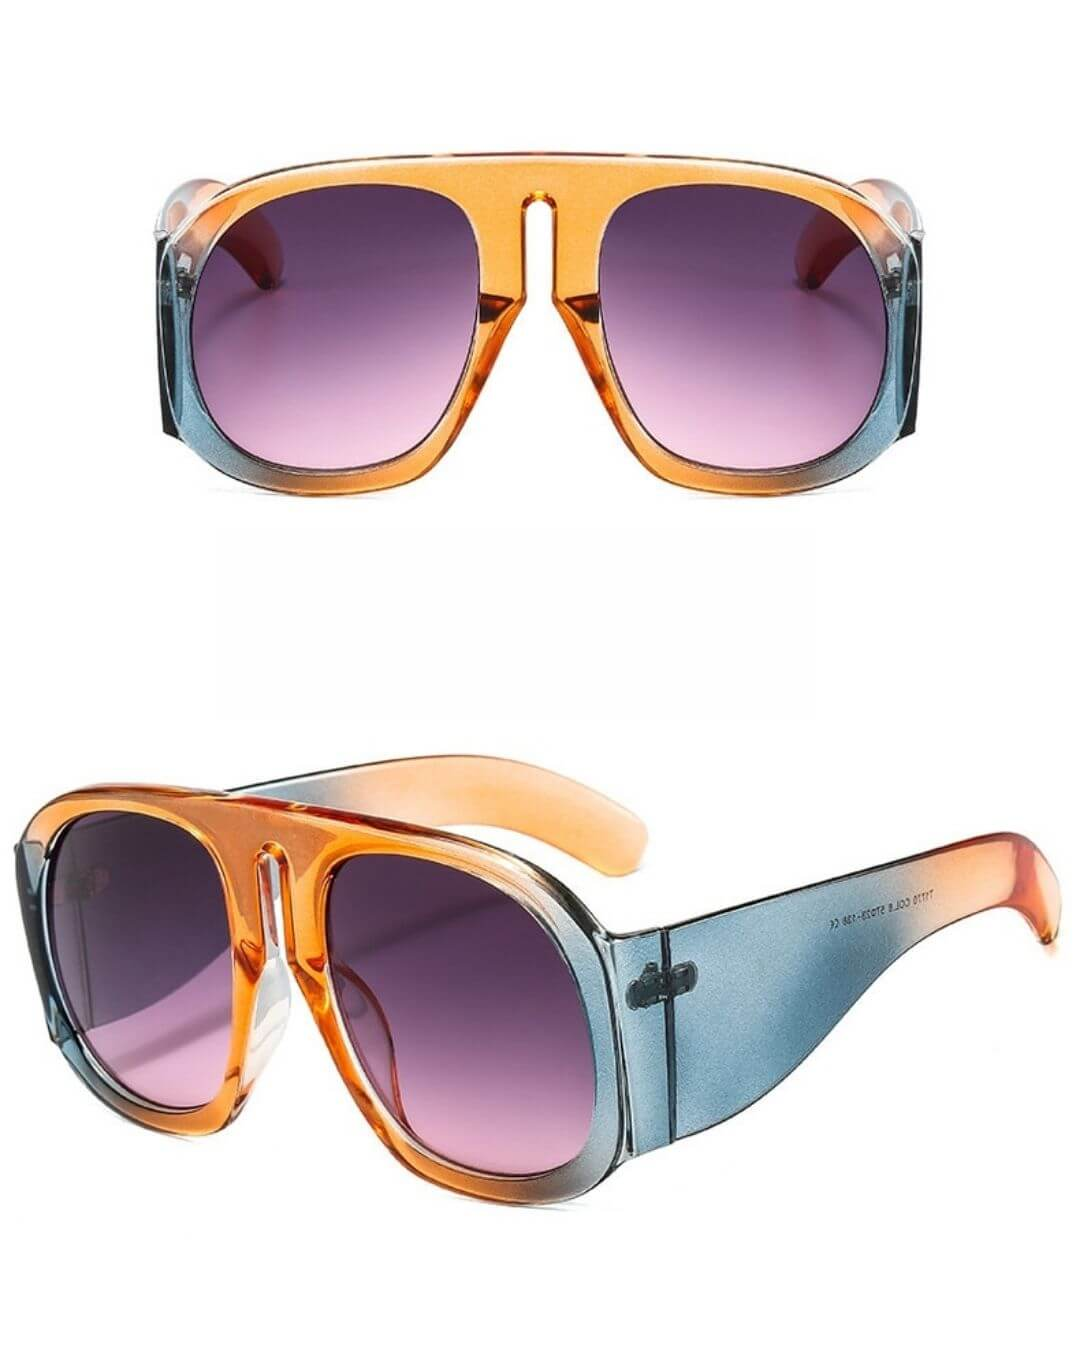 New Vintage Colorful Steampunk Sunglasses